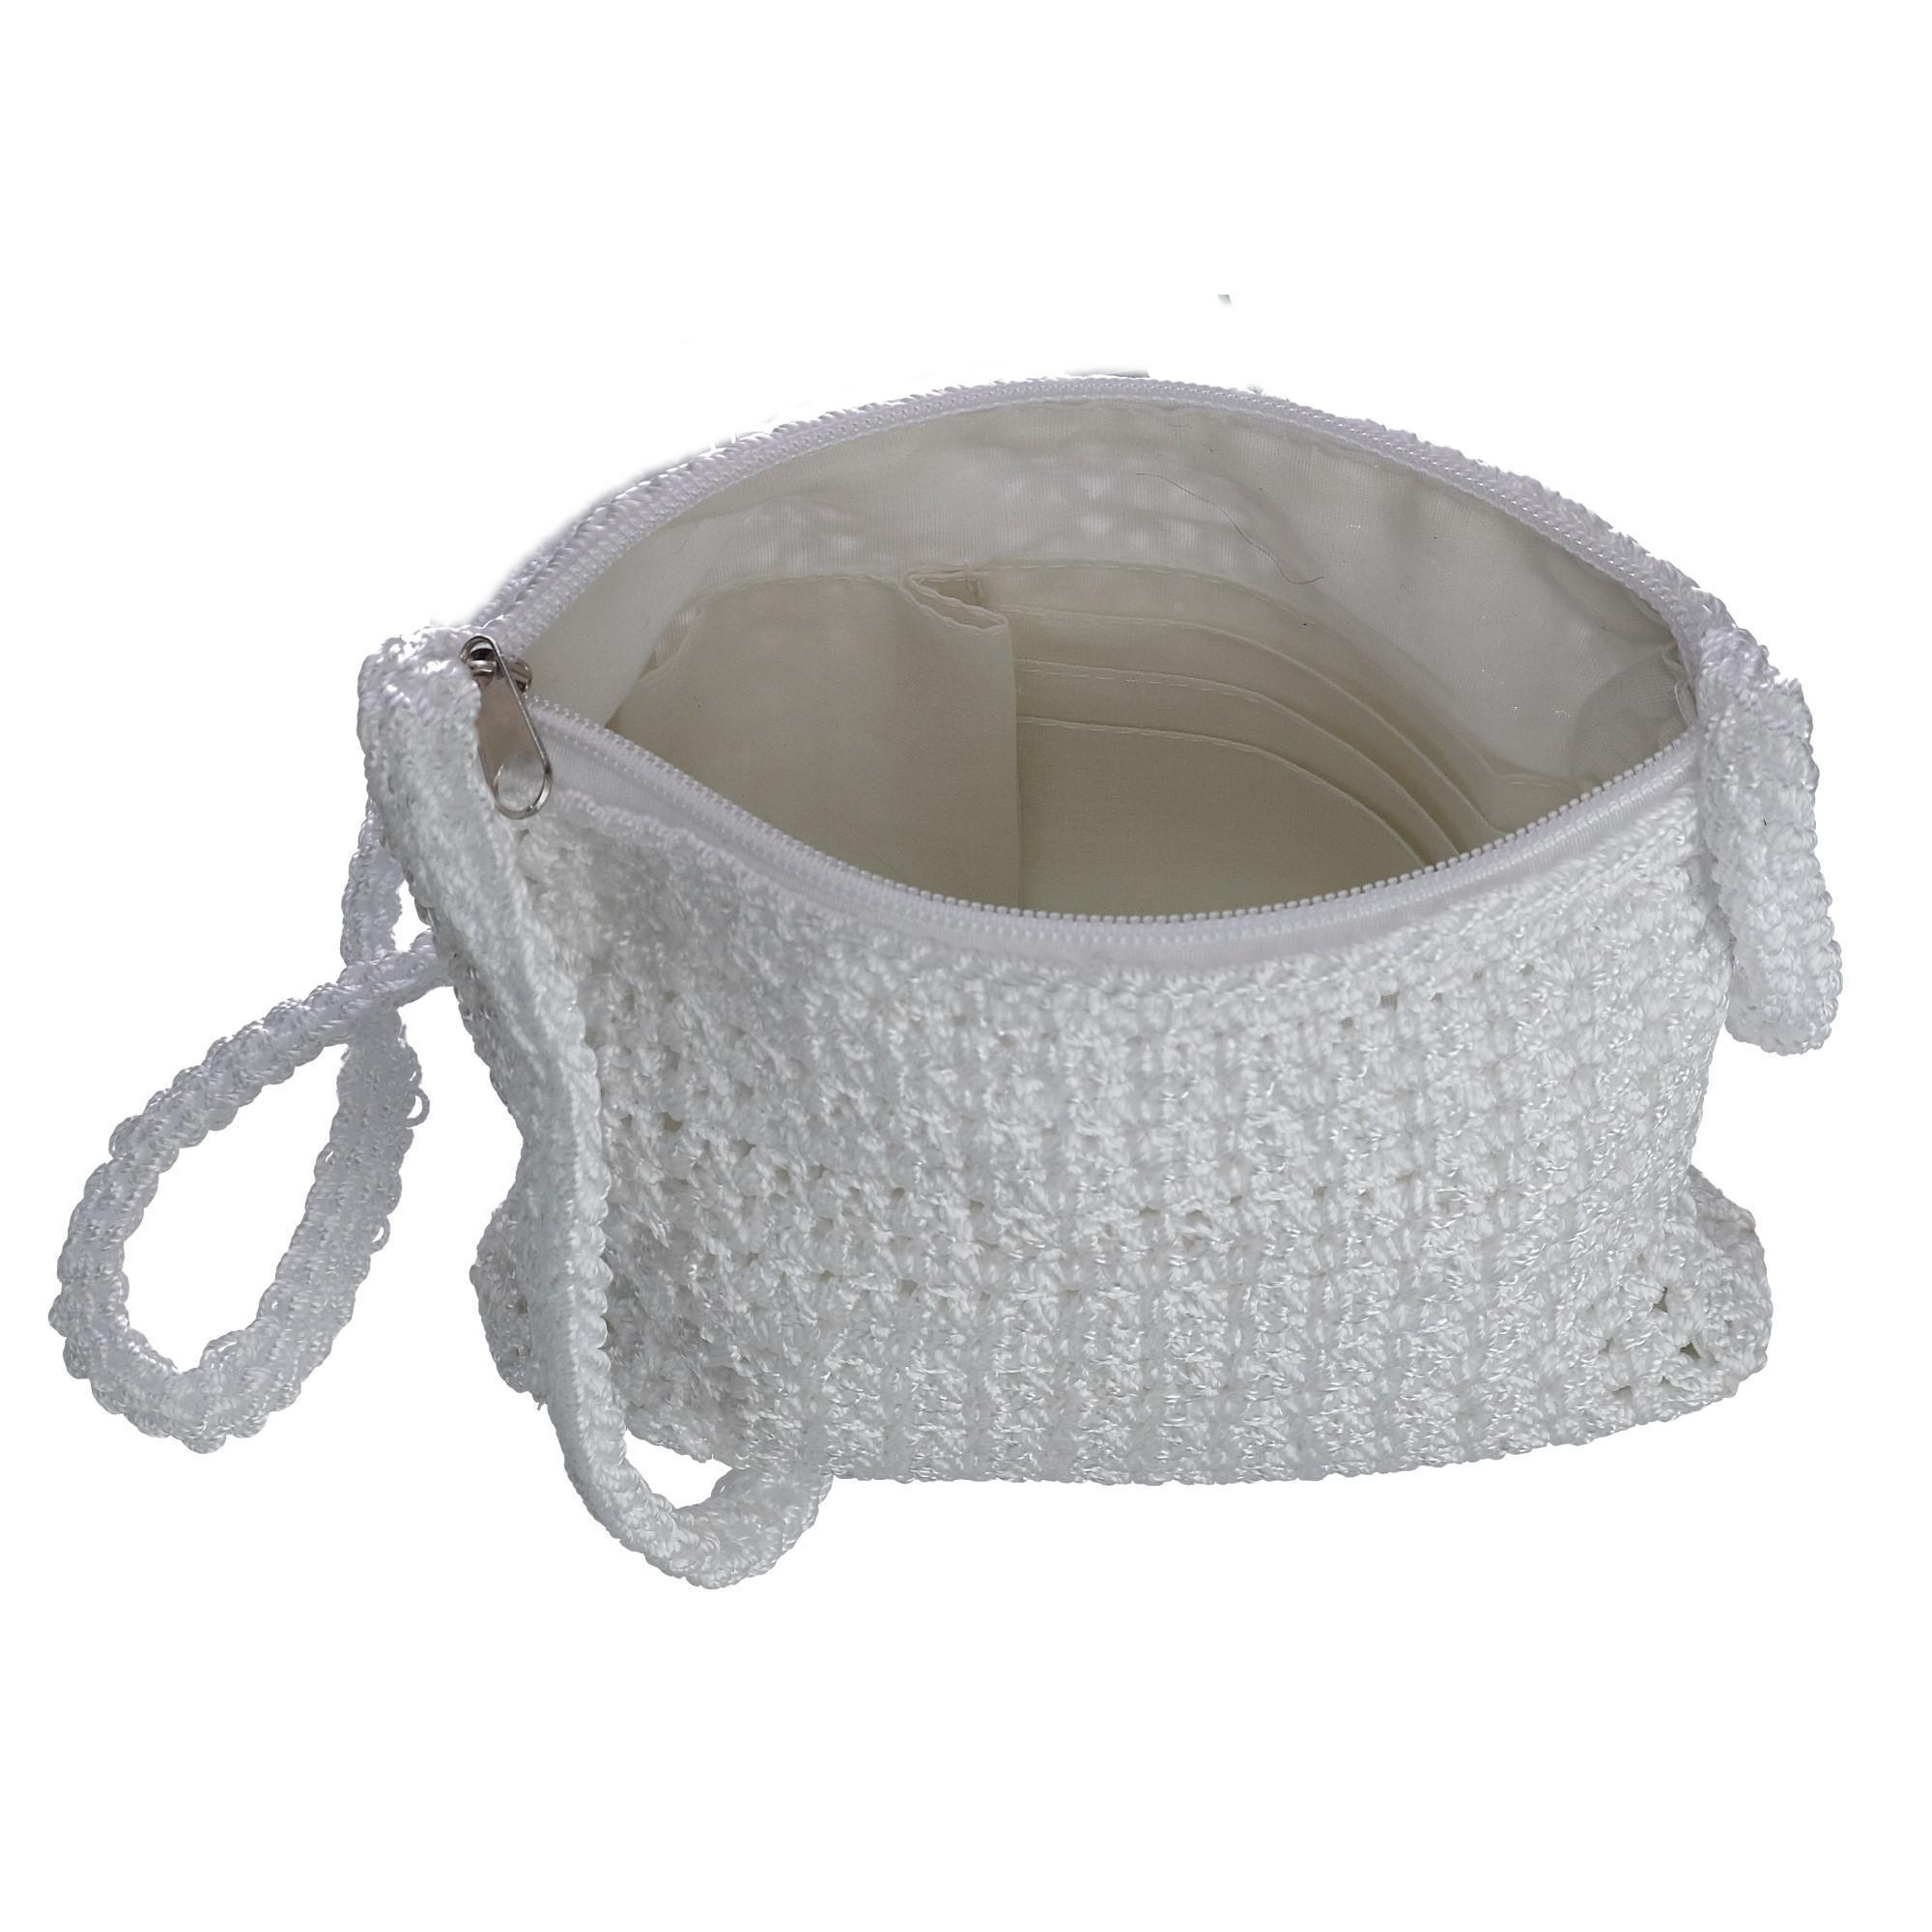 New-CTM-Women-039-s-Crochet-Crossbody-Handbag thumbnail 17